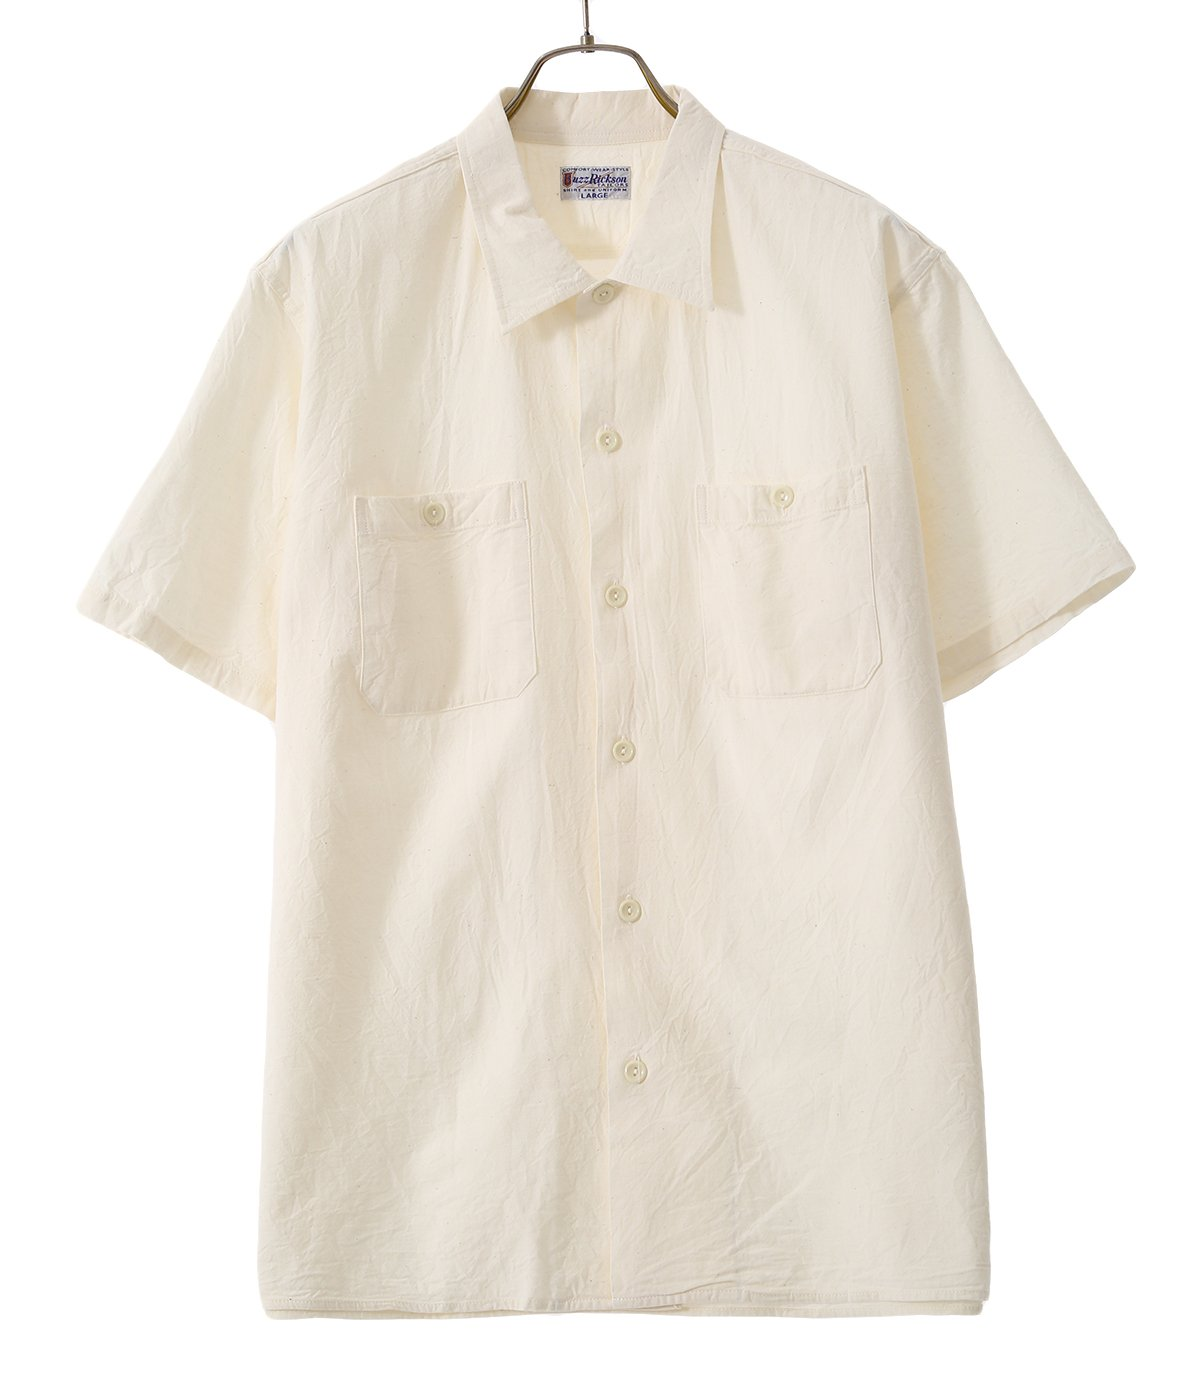 WHITE CHAMBRAY S/S WORK SHIRT